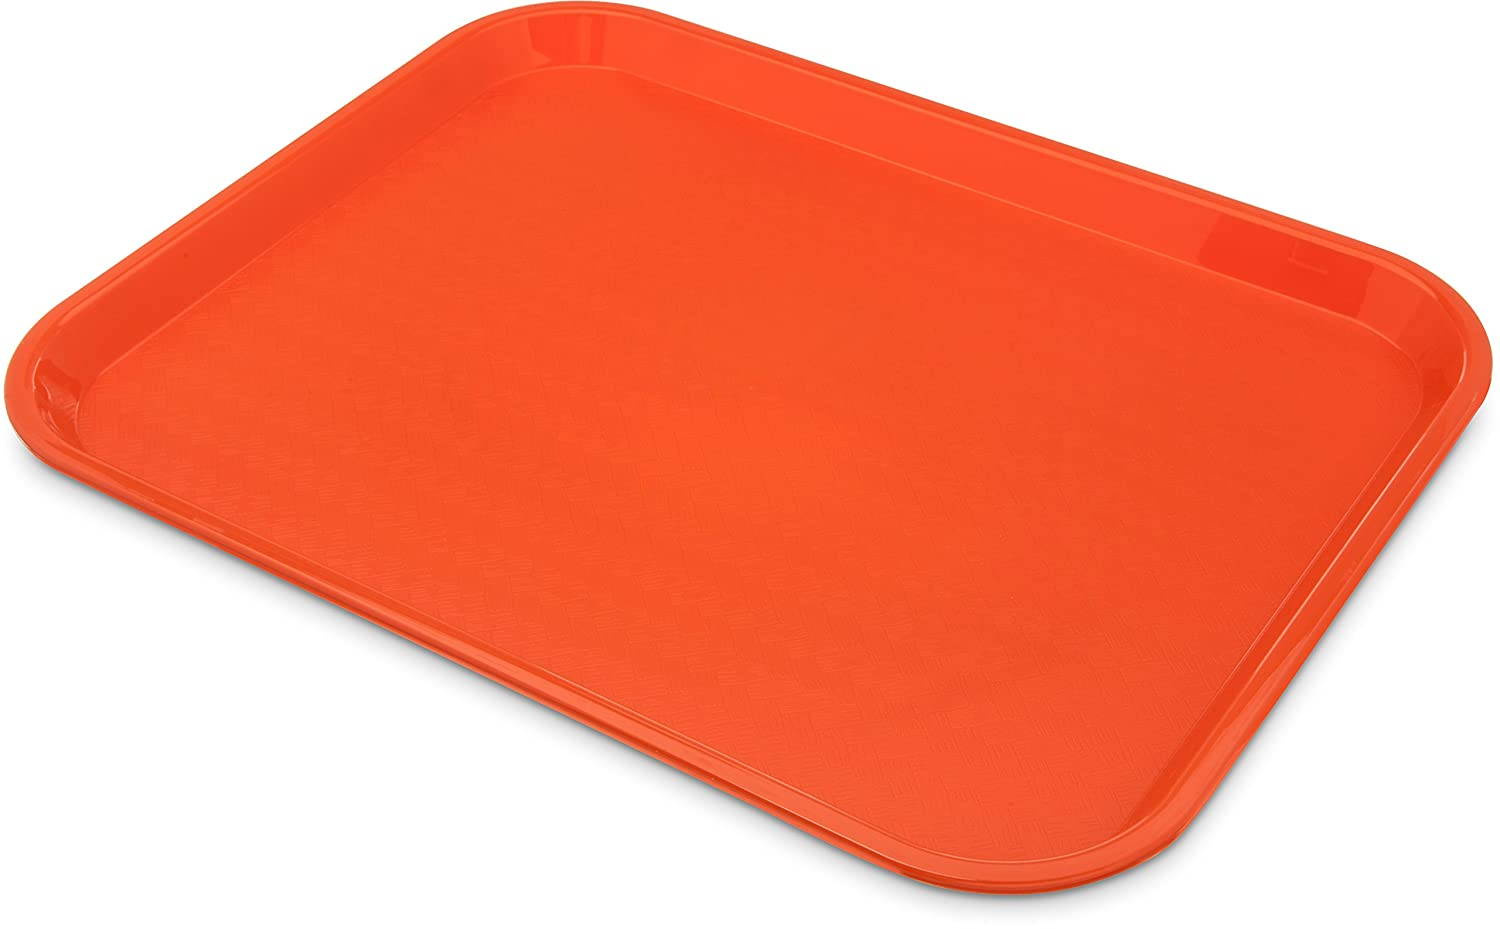 Carlisle CT141824 Café Standard Cafeteria / Fast Food Tray, 14